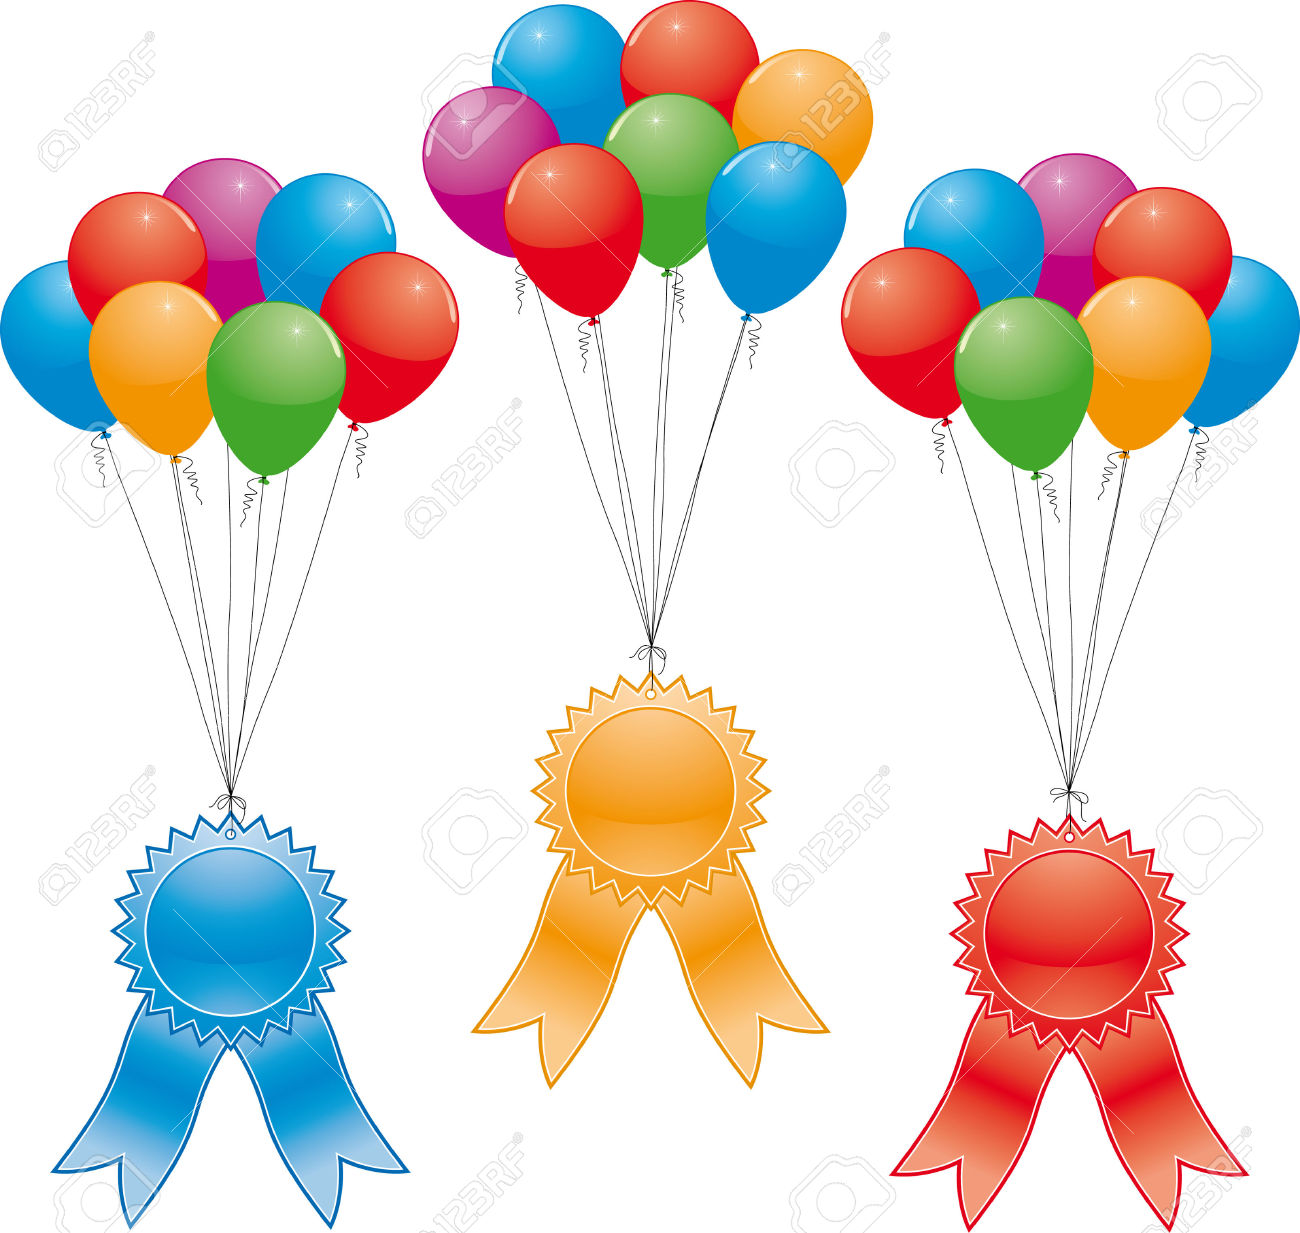 Free ceremony cliparts download. Celebration clipart award